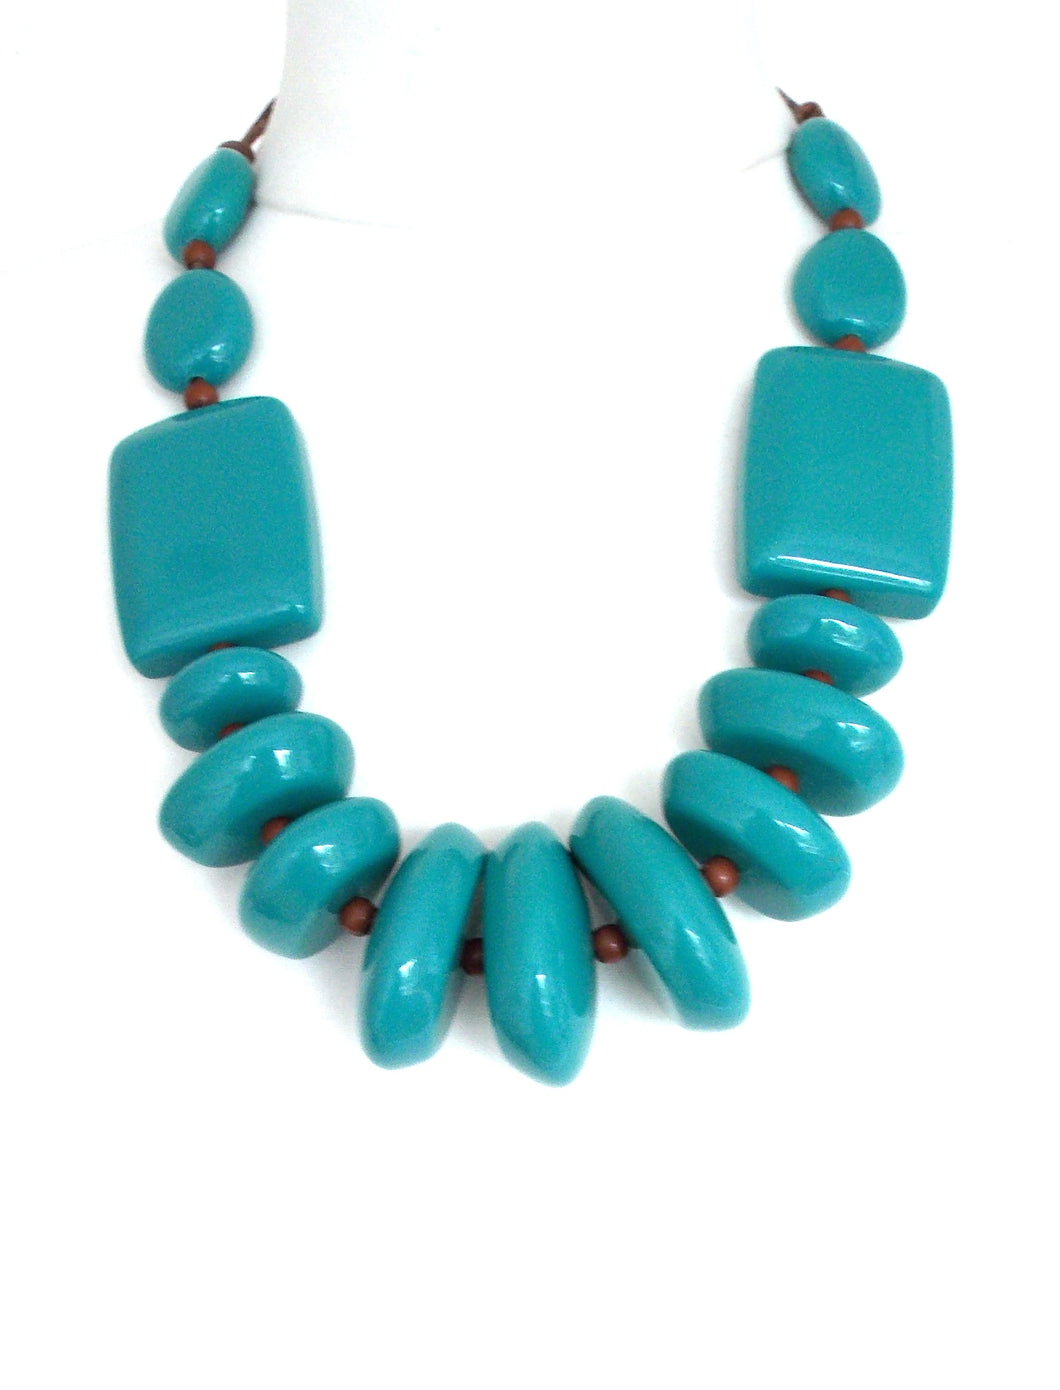 Turquoise Resin Chunky Bead Necklace